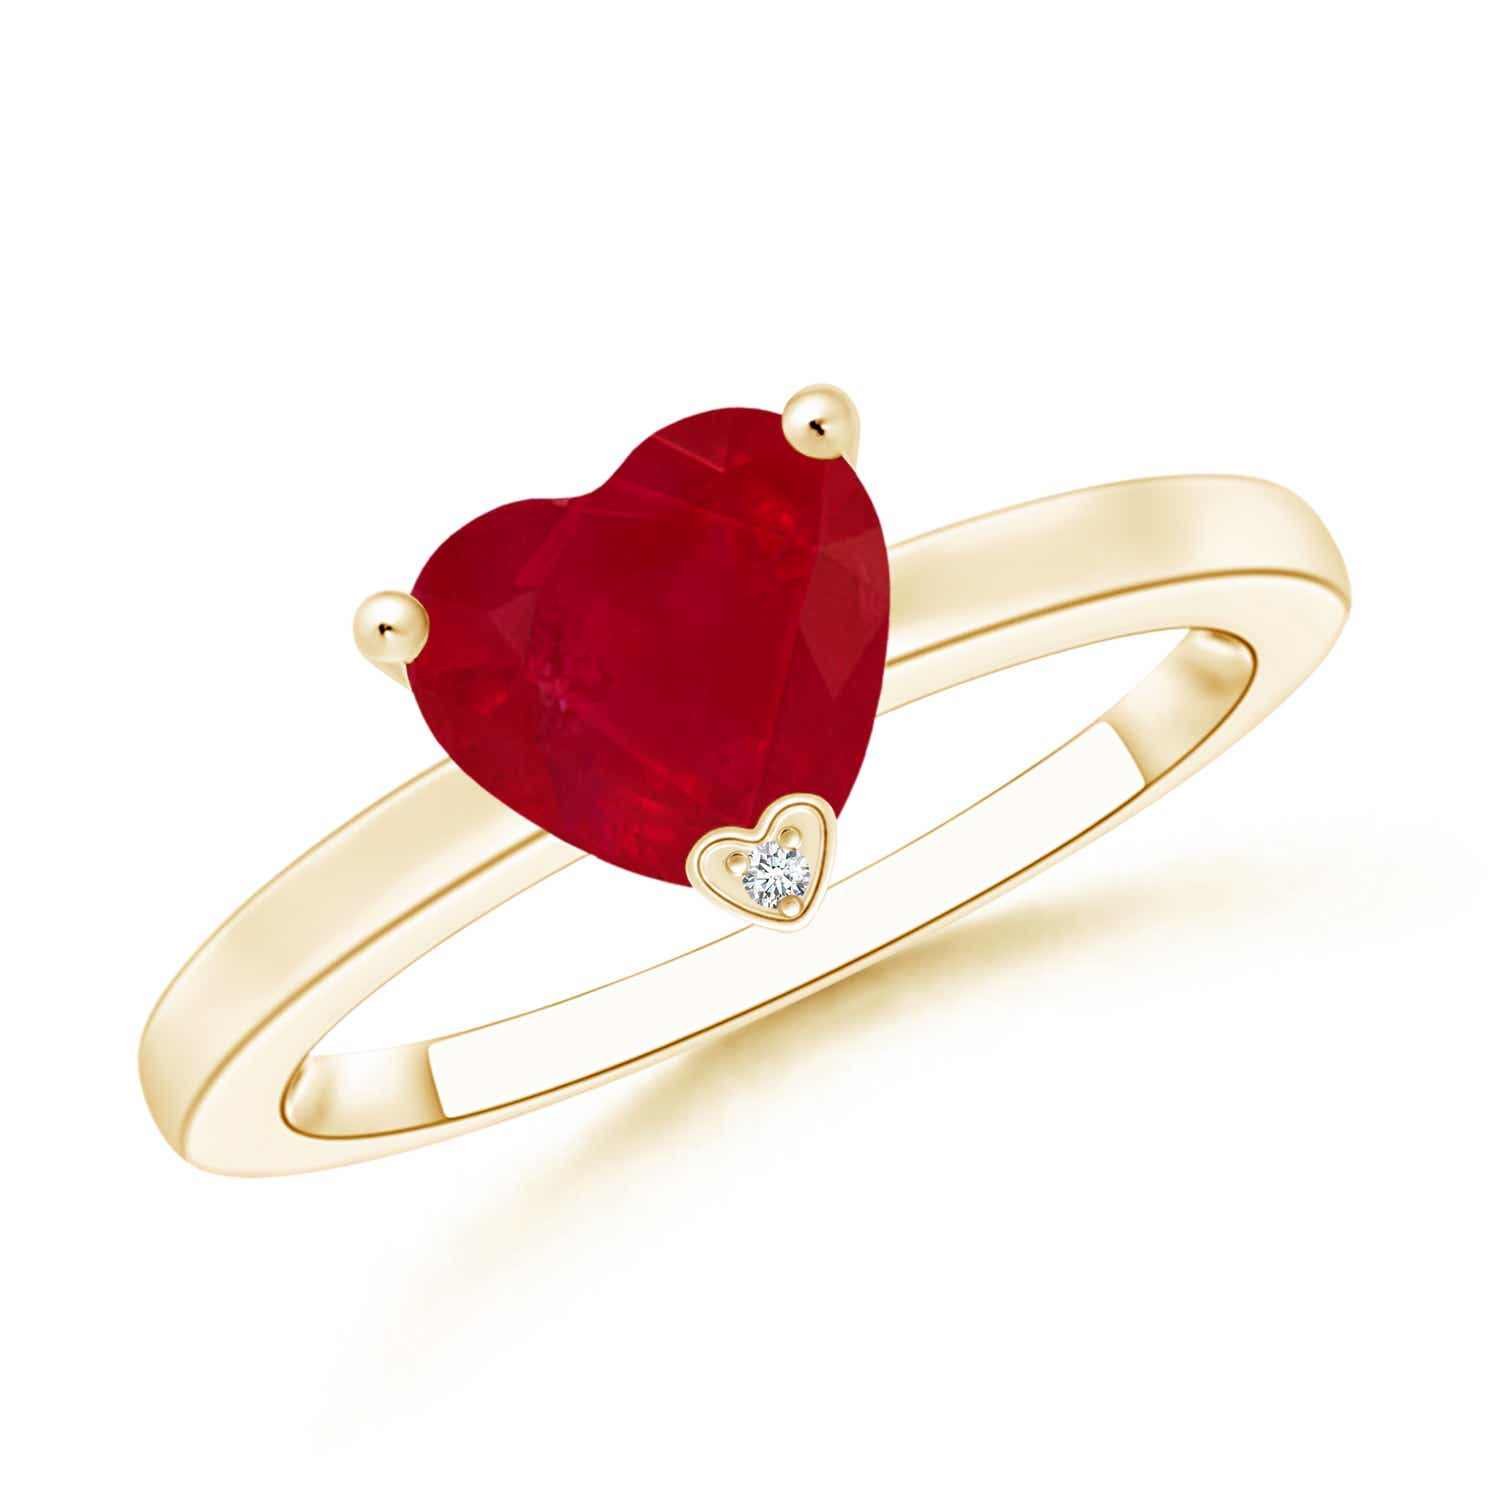 Angara Heart Ruby Ring in 14k Yellow Gold T4owV